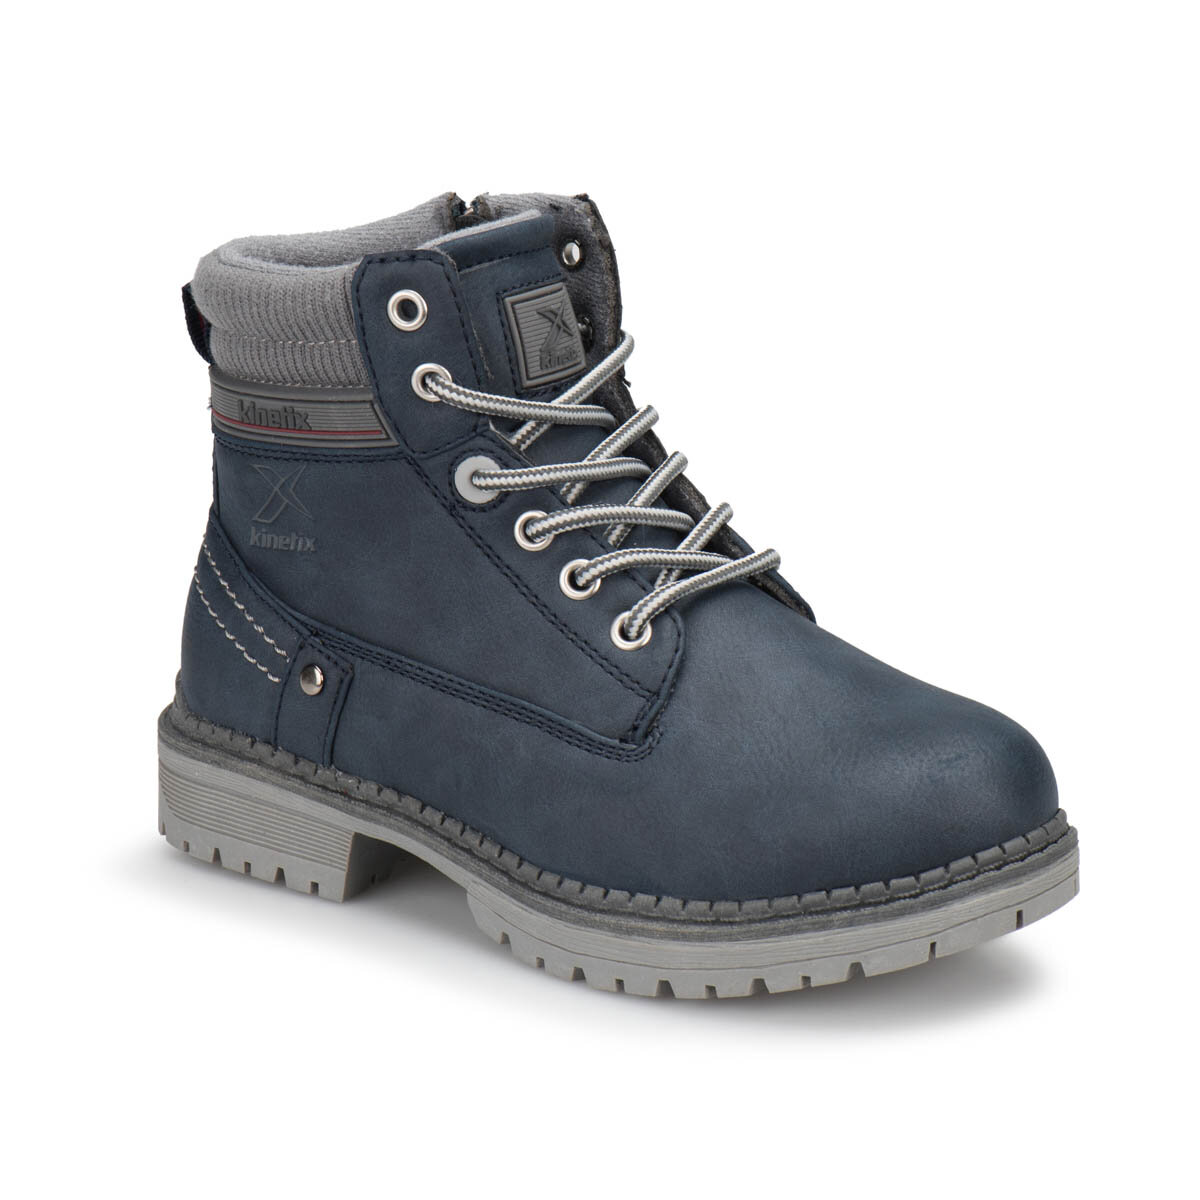 FLO RAPSO Navy Blue Male Child Boots KINETIX